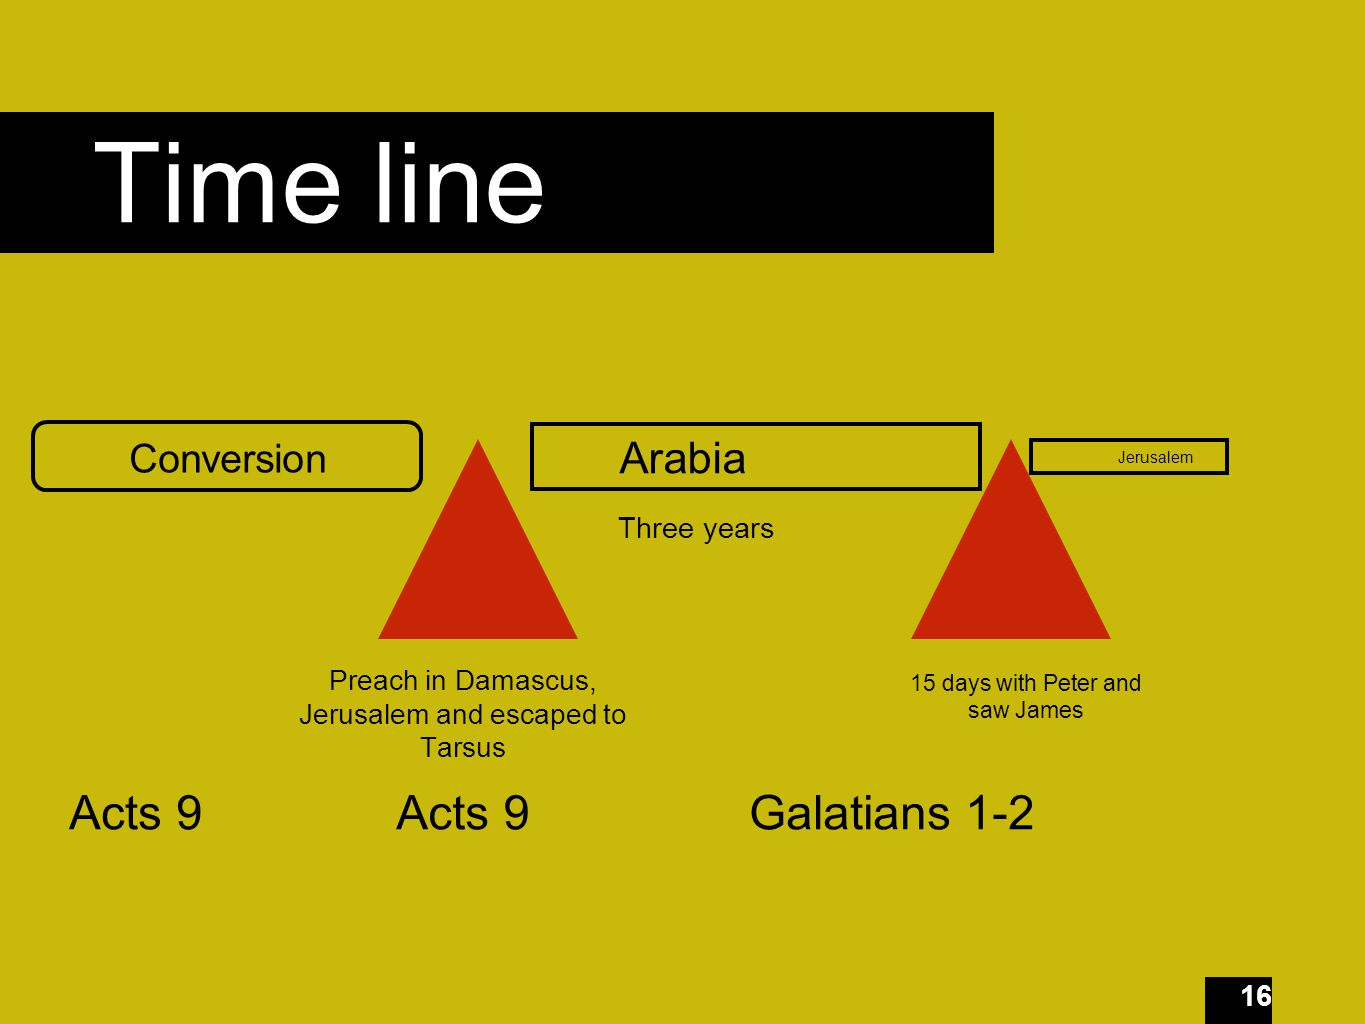 16 Time line Conversion Preach in Damascus, Jerusalem and escaped to Tarsus Arabia Three years Jerusalem 15 days with Peter and saw James Acts 9 Galatians 1-2